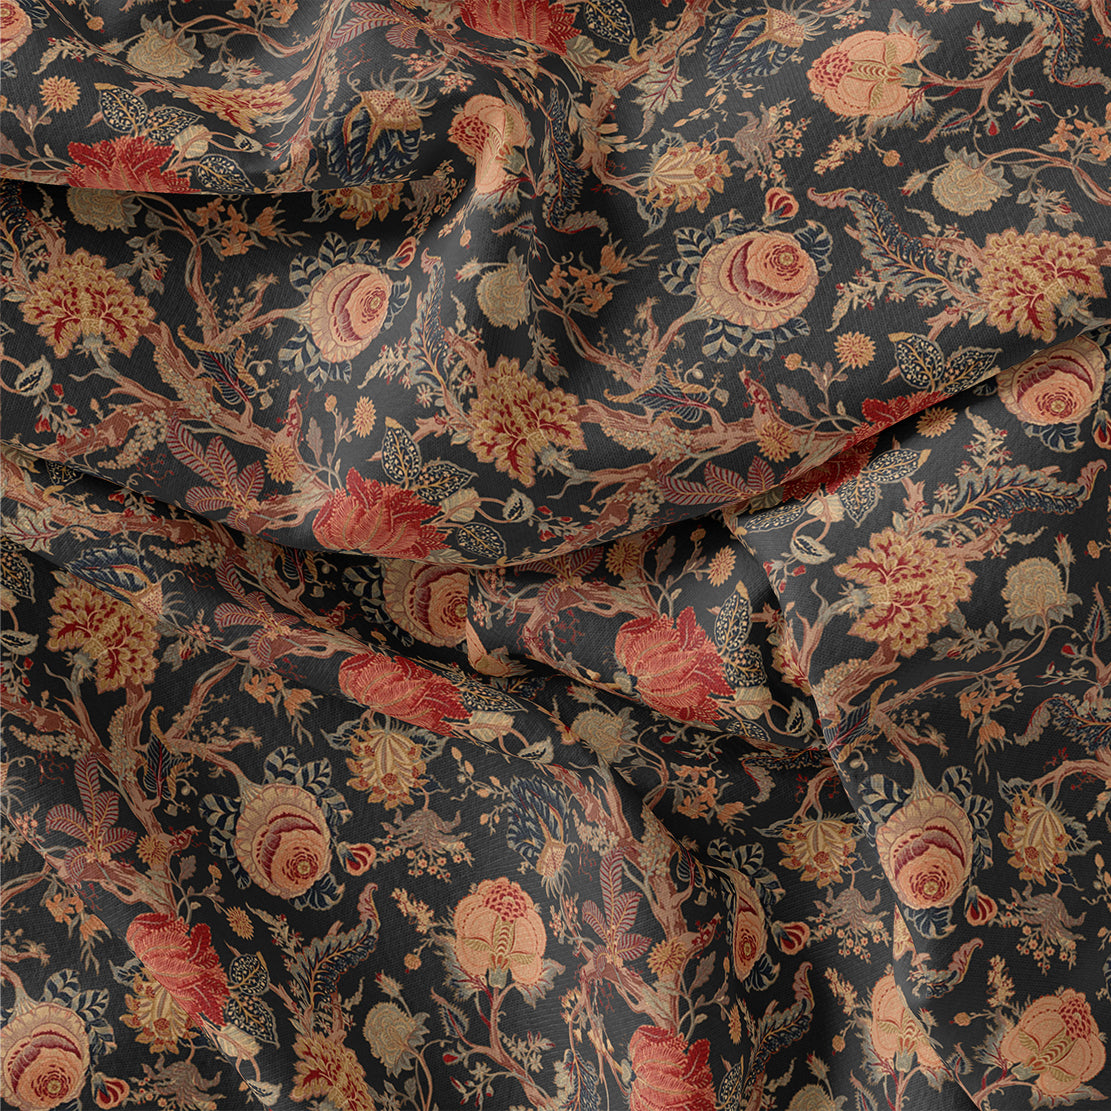 Japanese Chinoiserie Natural Digital Printed Fabric